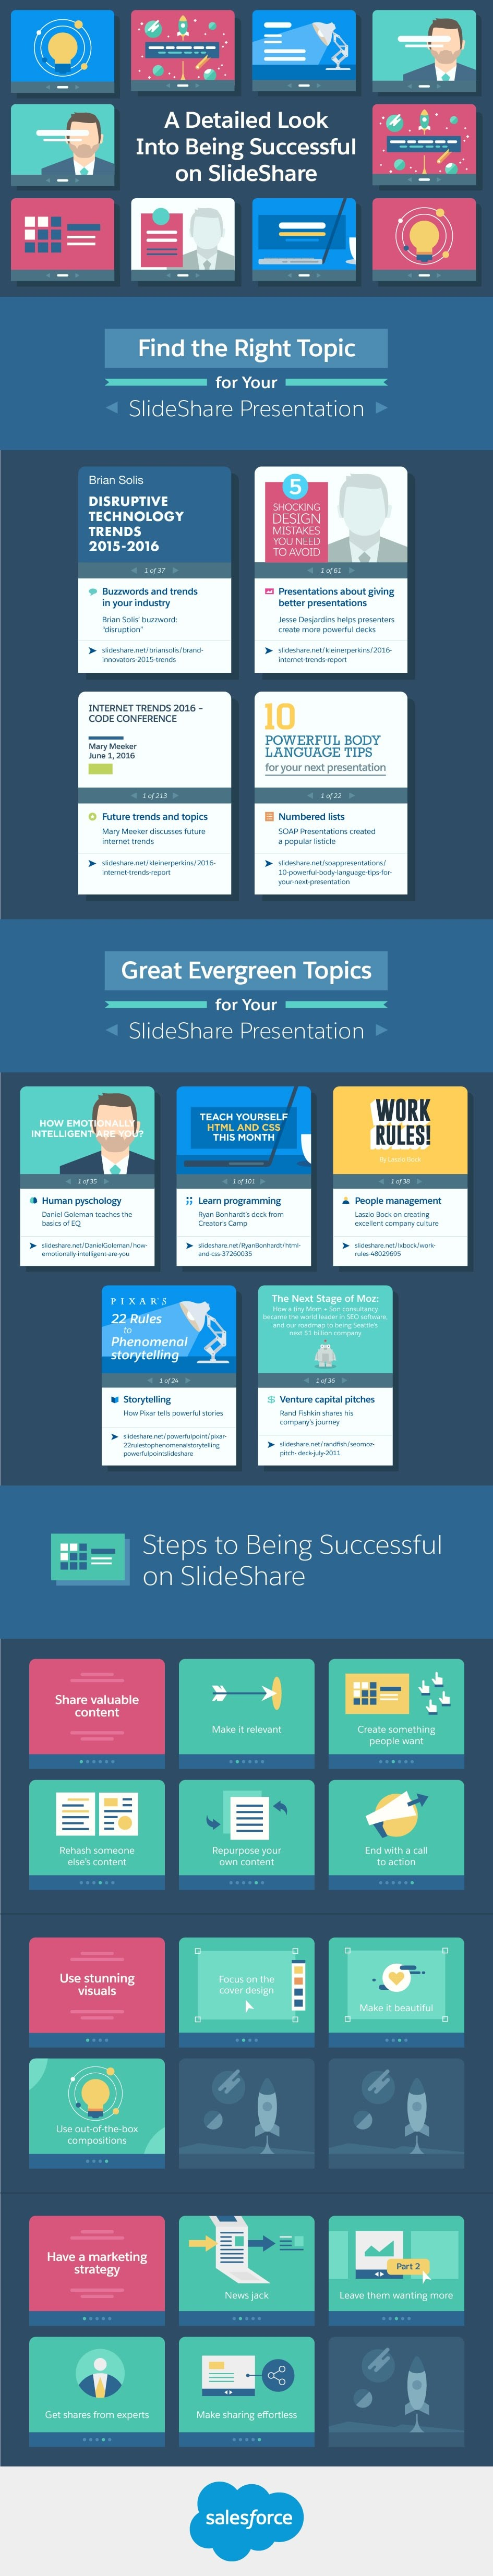 A Detailed Look Into Being Successful on SlideShare - #infographic